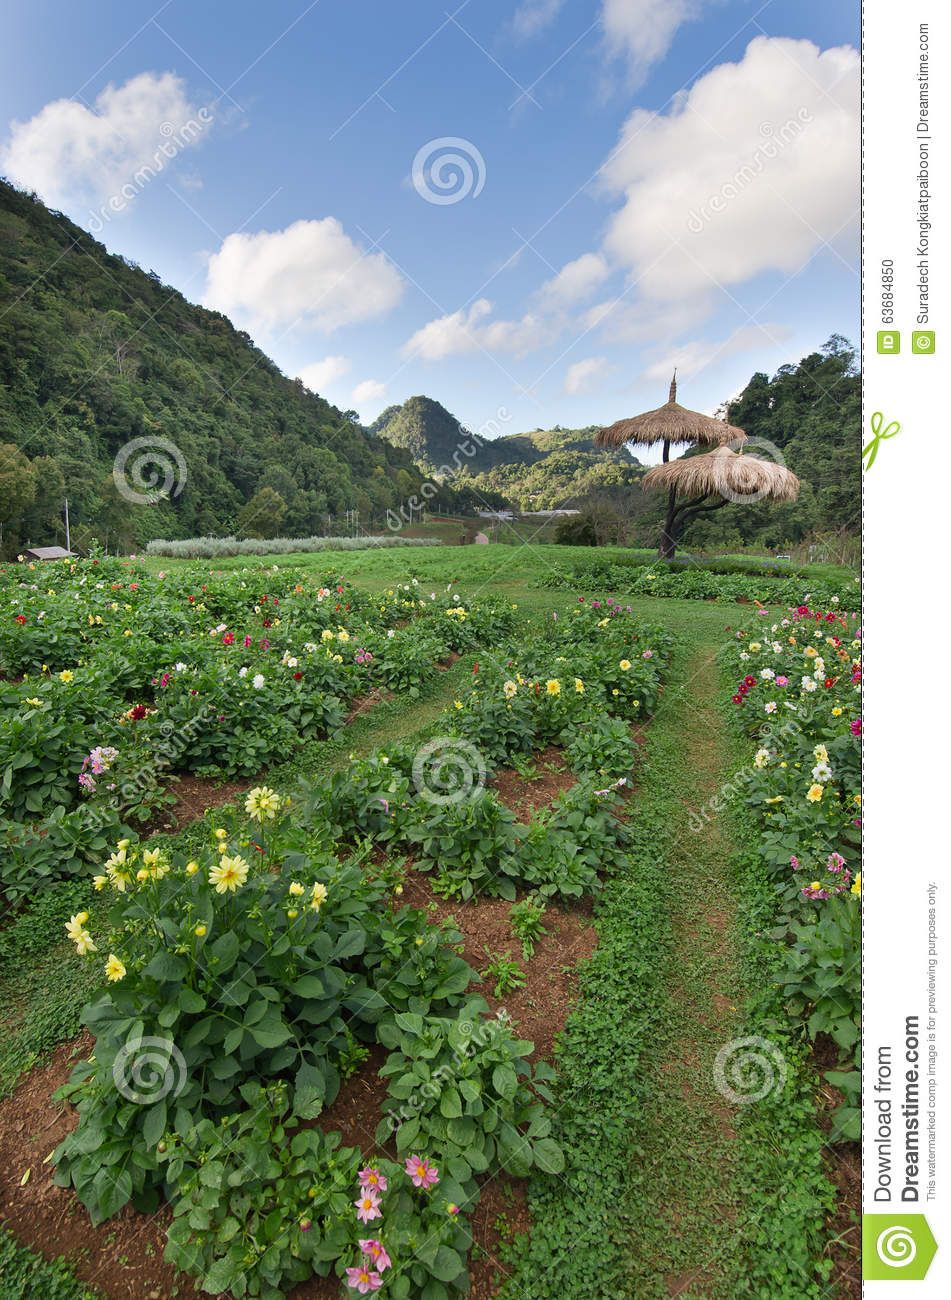 national farm and garden National center for appropriate technology attra - national sustainable agriculture information service [a]ccess to land, capital, and markets is creating the necessary environment for farmers to manage a profitable urban farm.